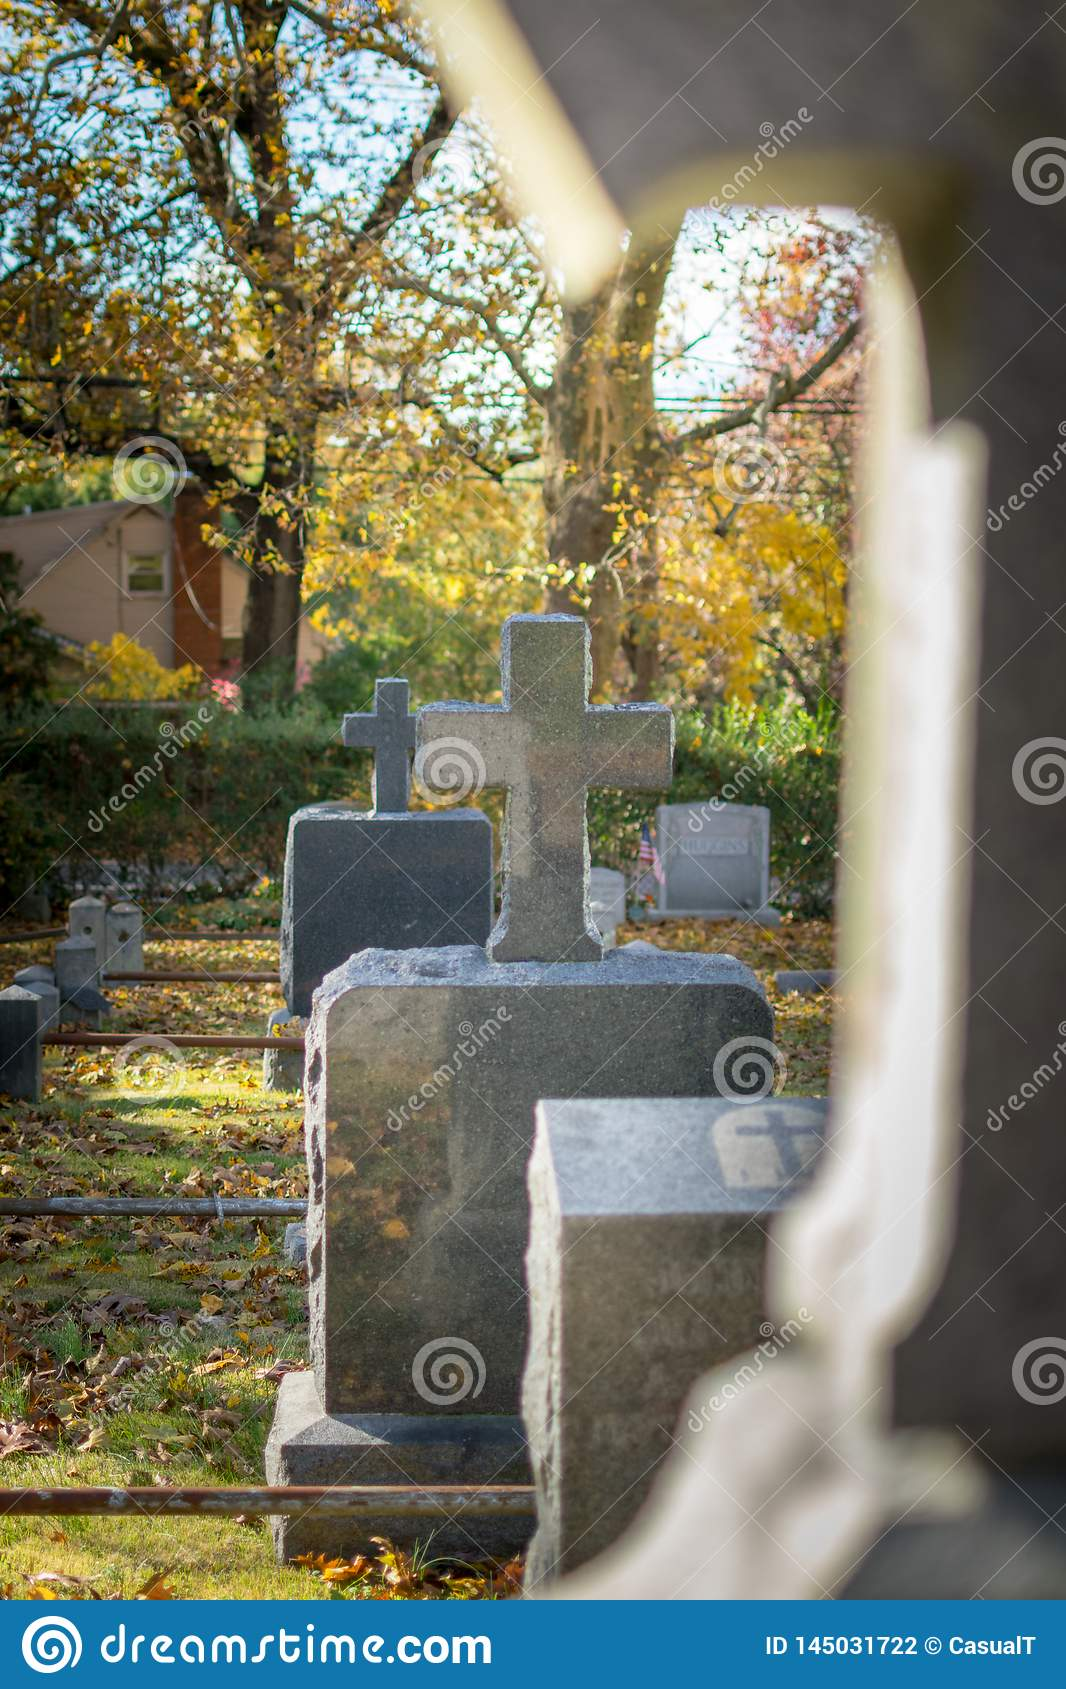 Crosses and gravestones among grass and fallen leaves, on an Autumn day at Sleepy Hollow Cemetery, Upstate New York, NY